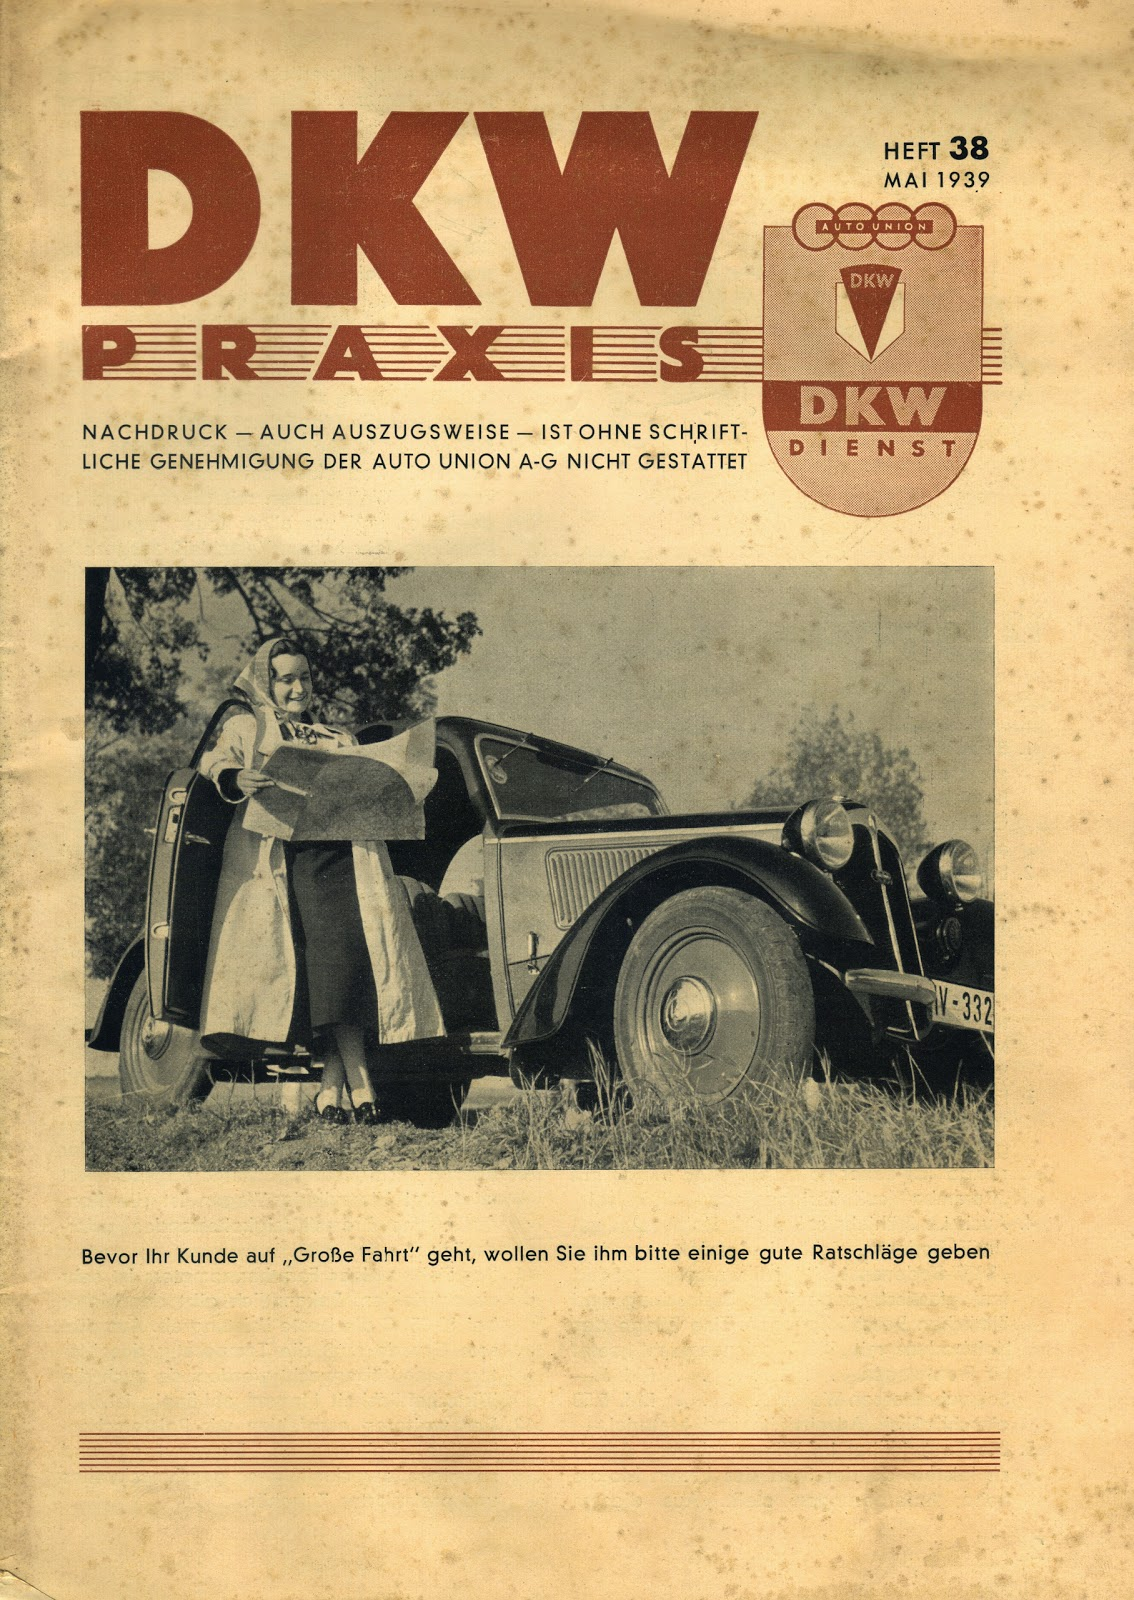 Along with customer marketing magazines, DKW also produced a repair and  service magazine aimed at DKW service personnel and home mechanics.